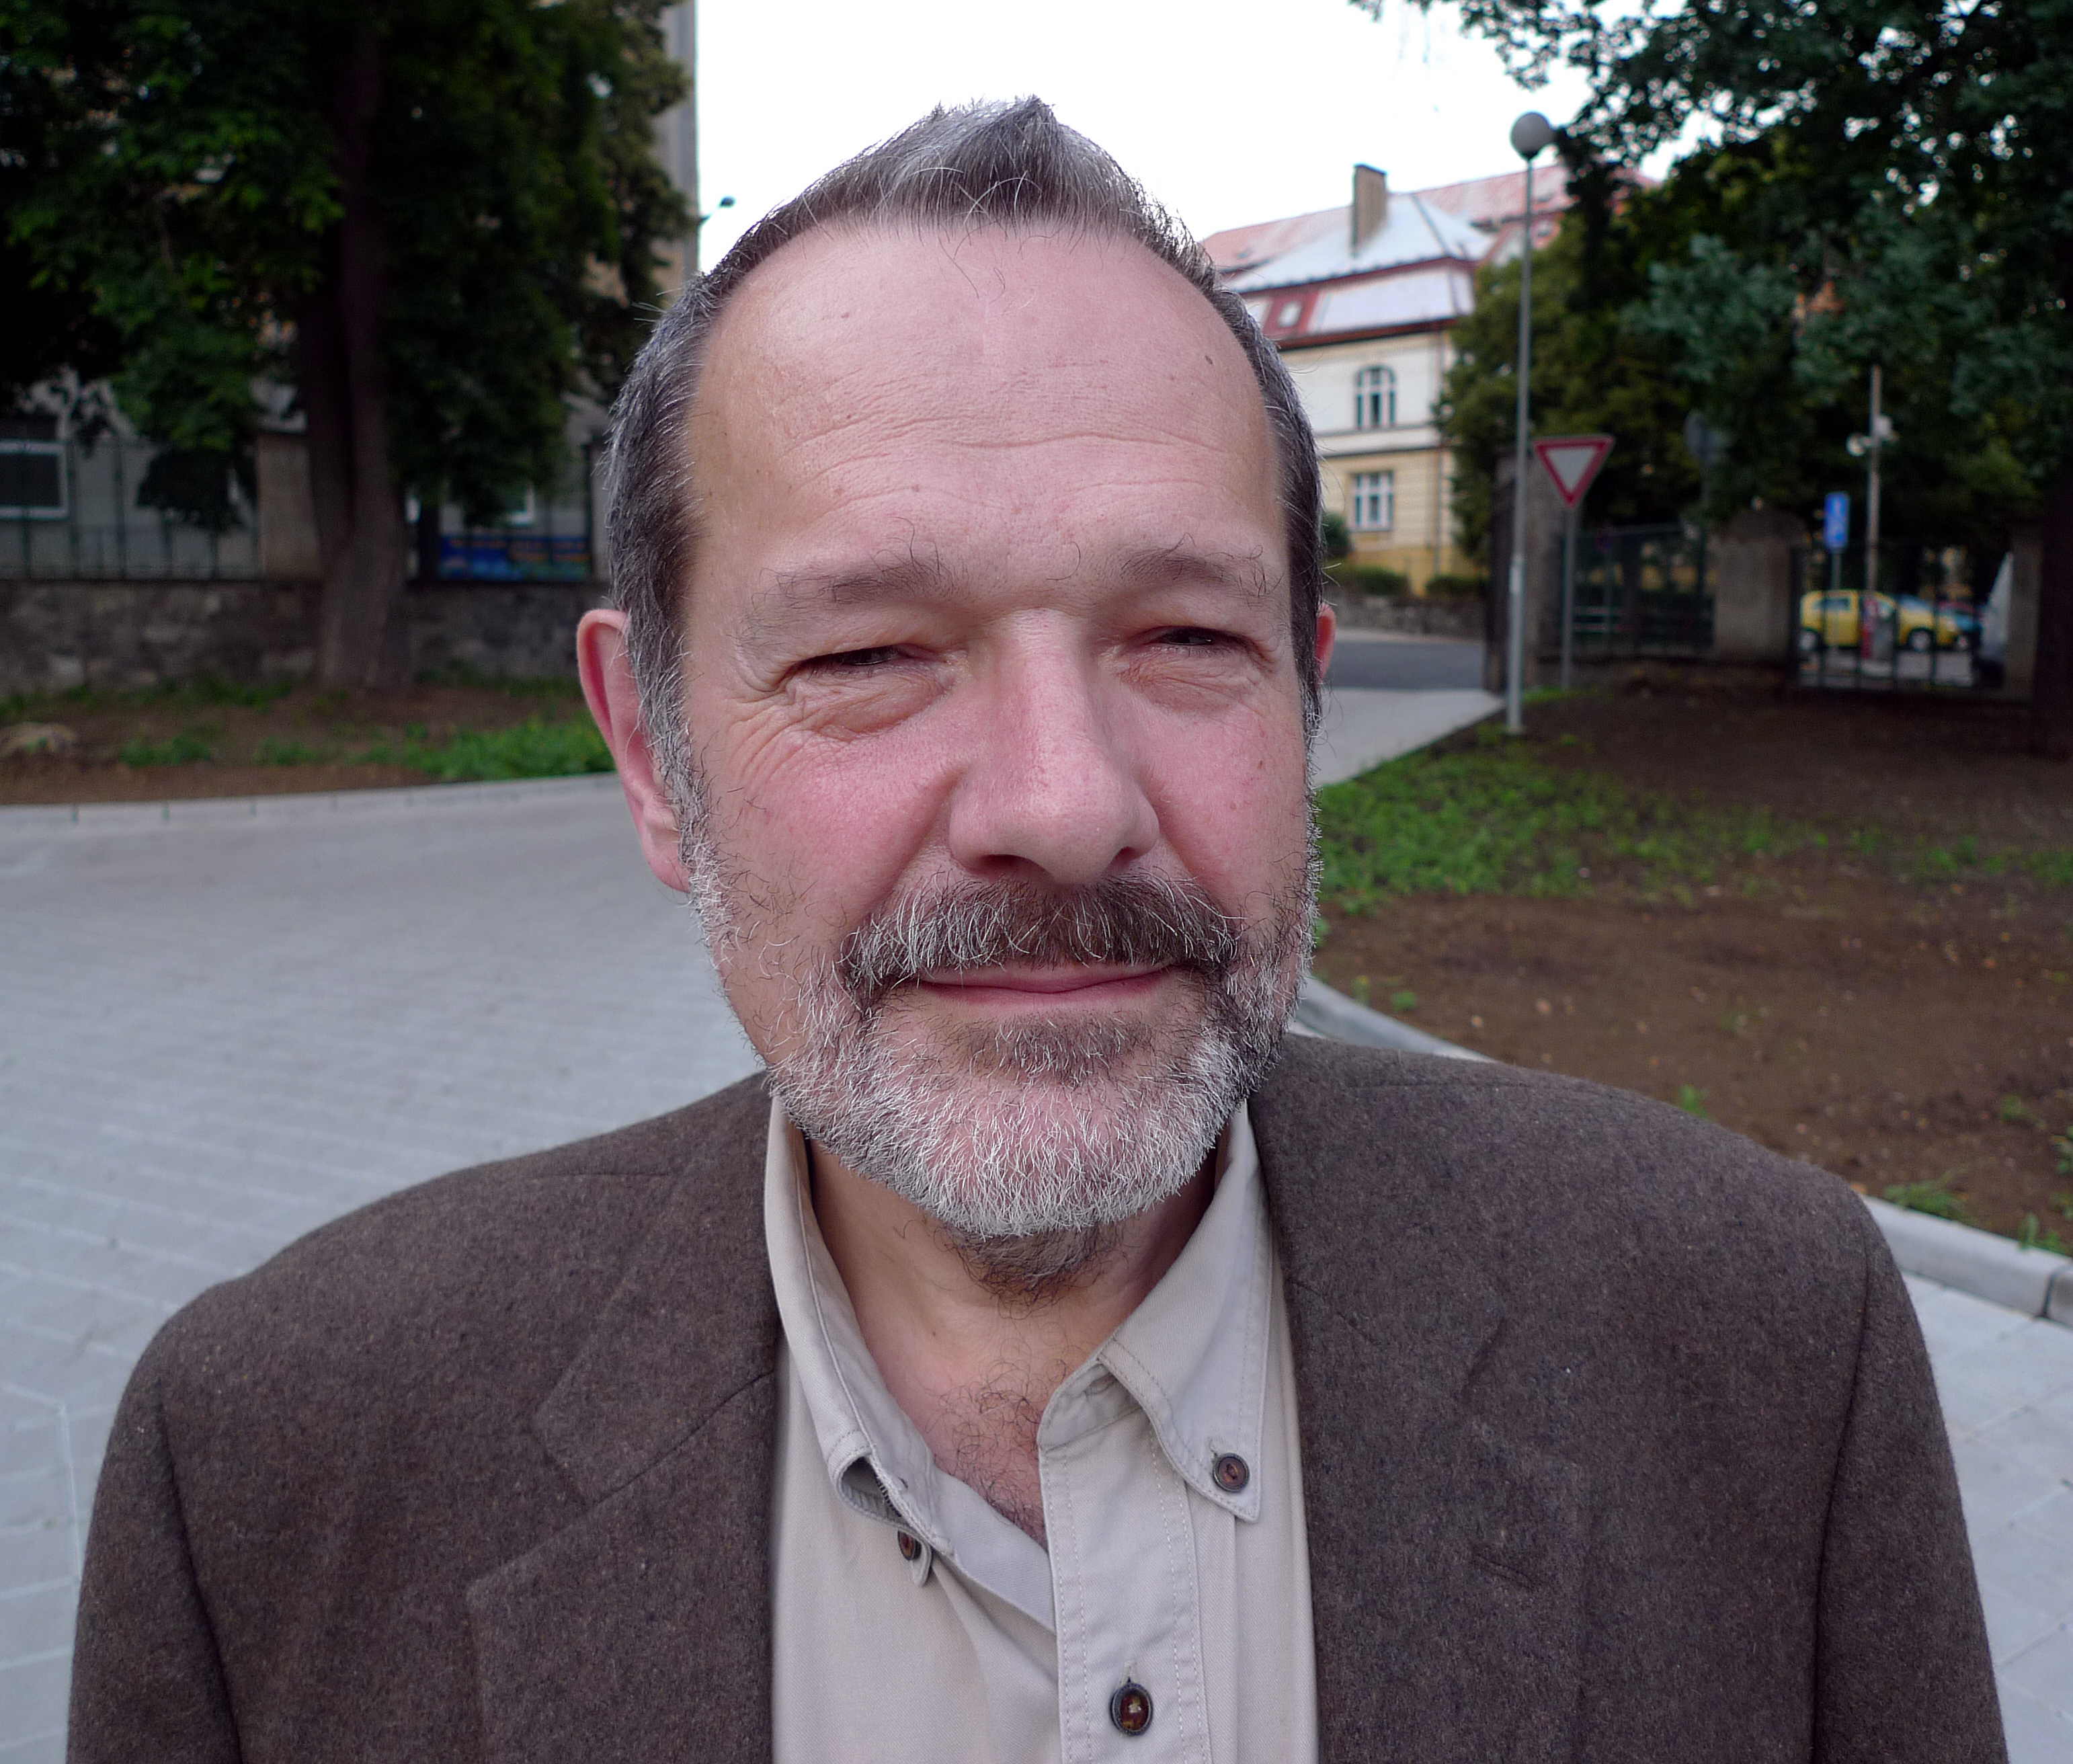 Image of Pavel Mára from Wikidata